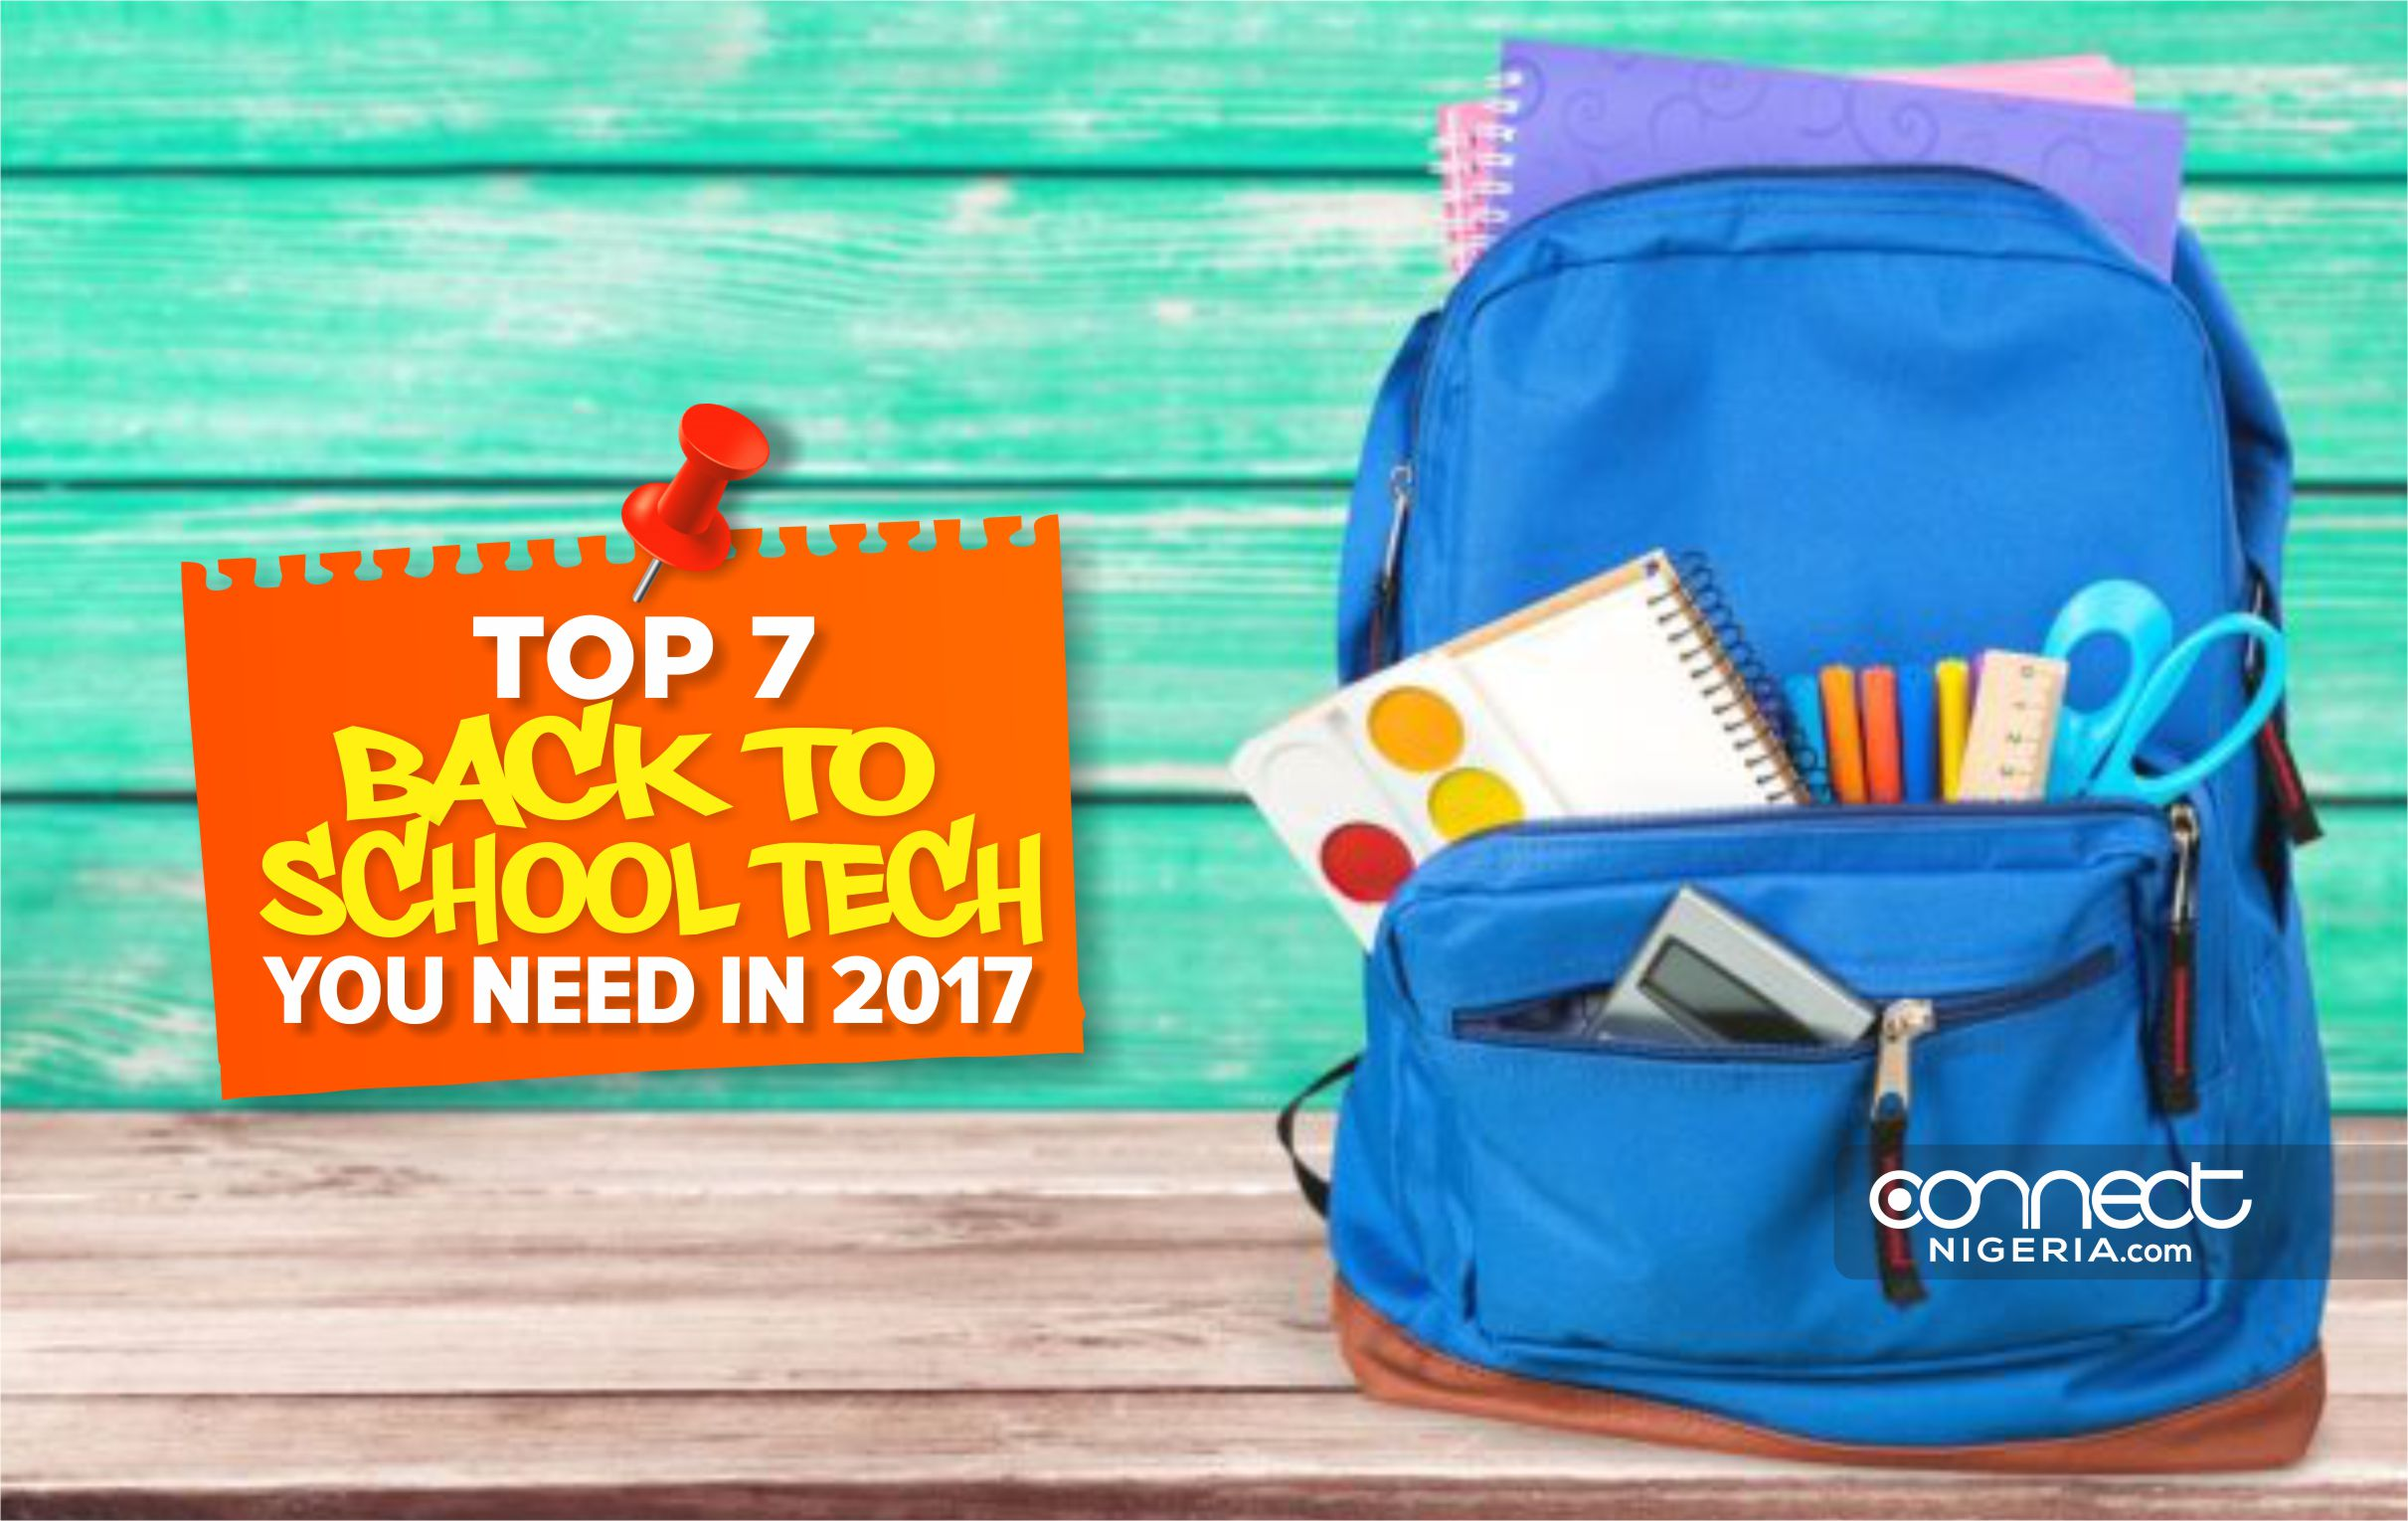 Top 7 Back To School Tech You Need In 2017